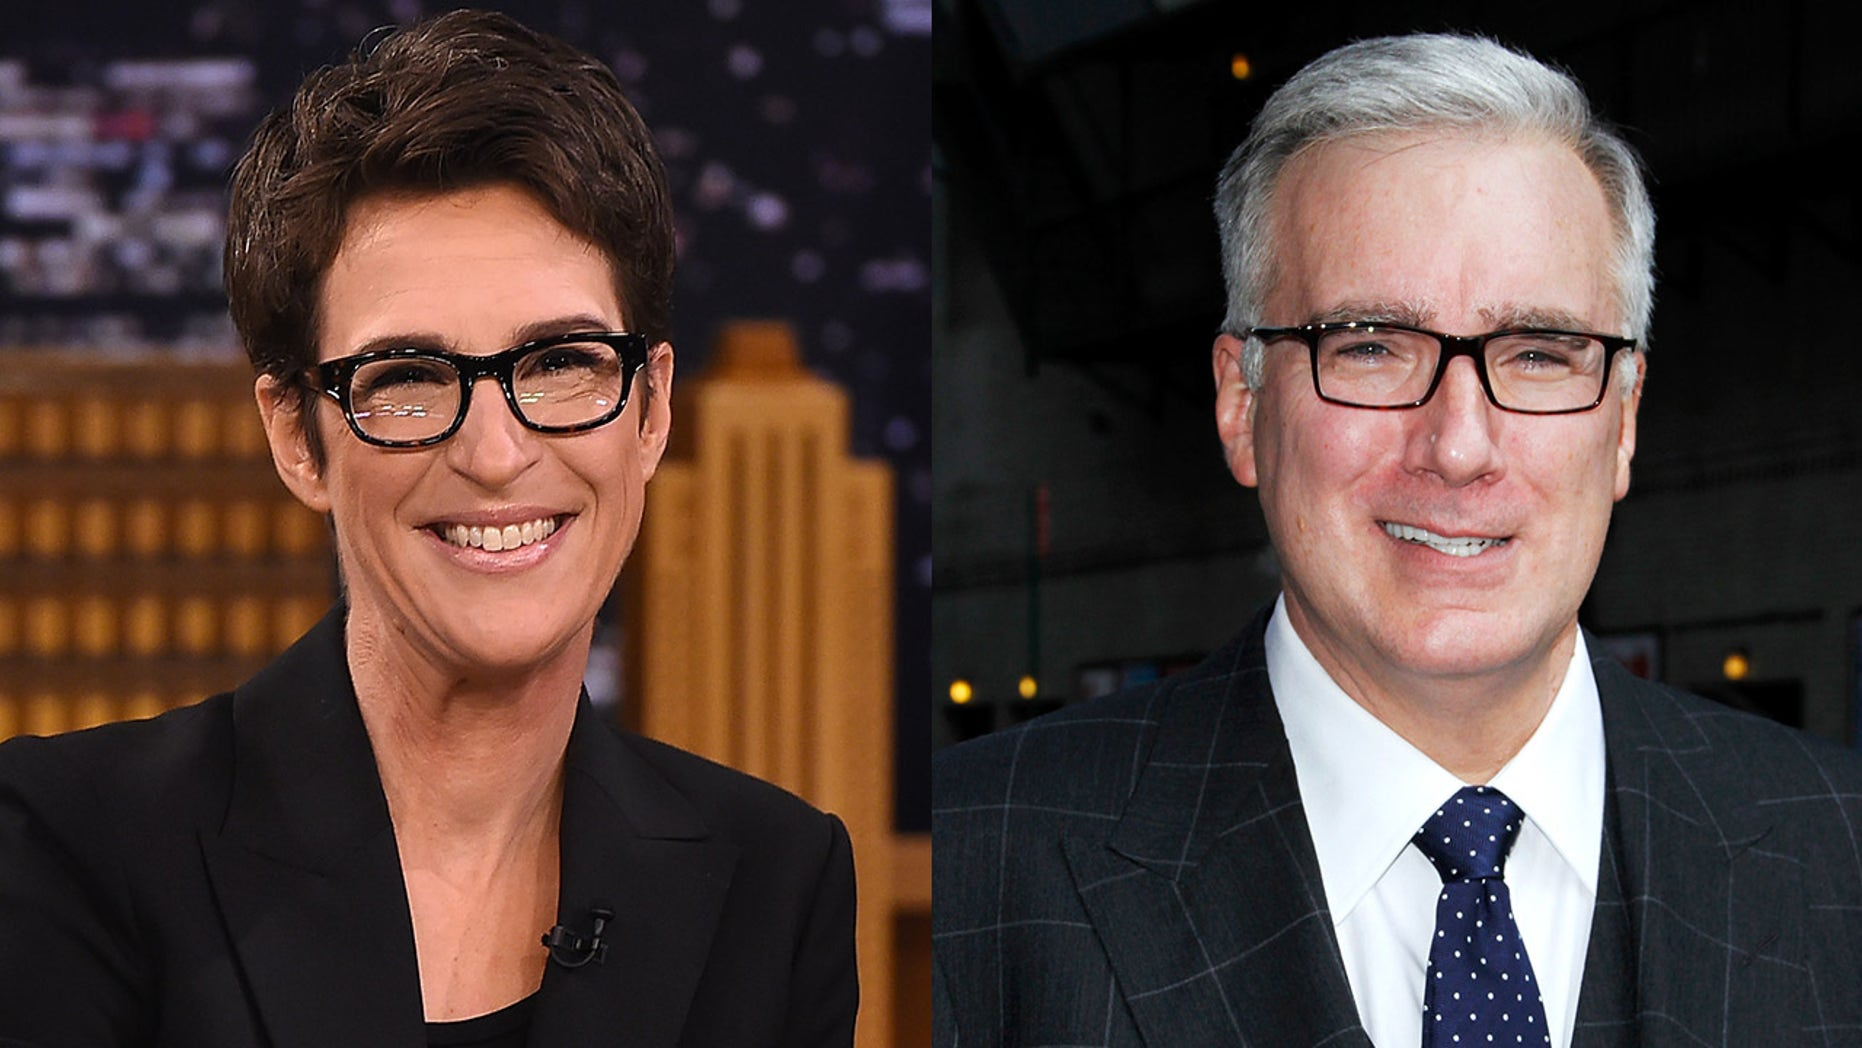 Former MSNBC star Keith Olbermann went after his old colleagues Rachel Maddow and Steve Kornacki, who he considered to be ungrateful for aiding their careers.